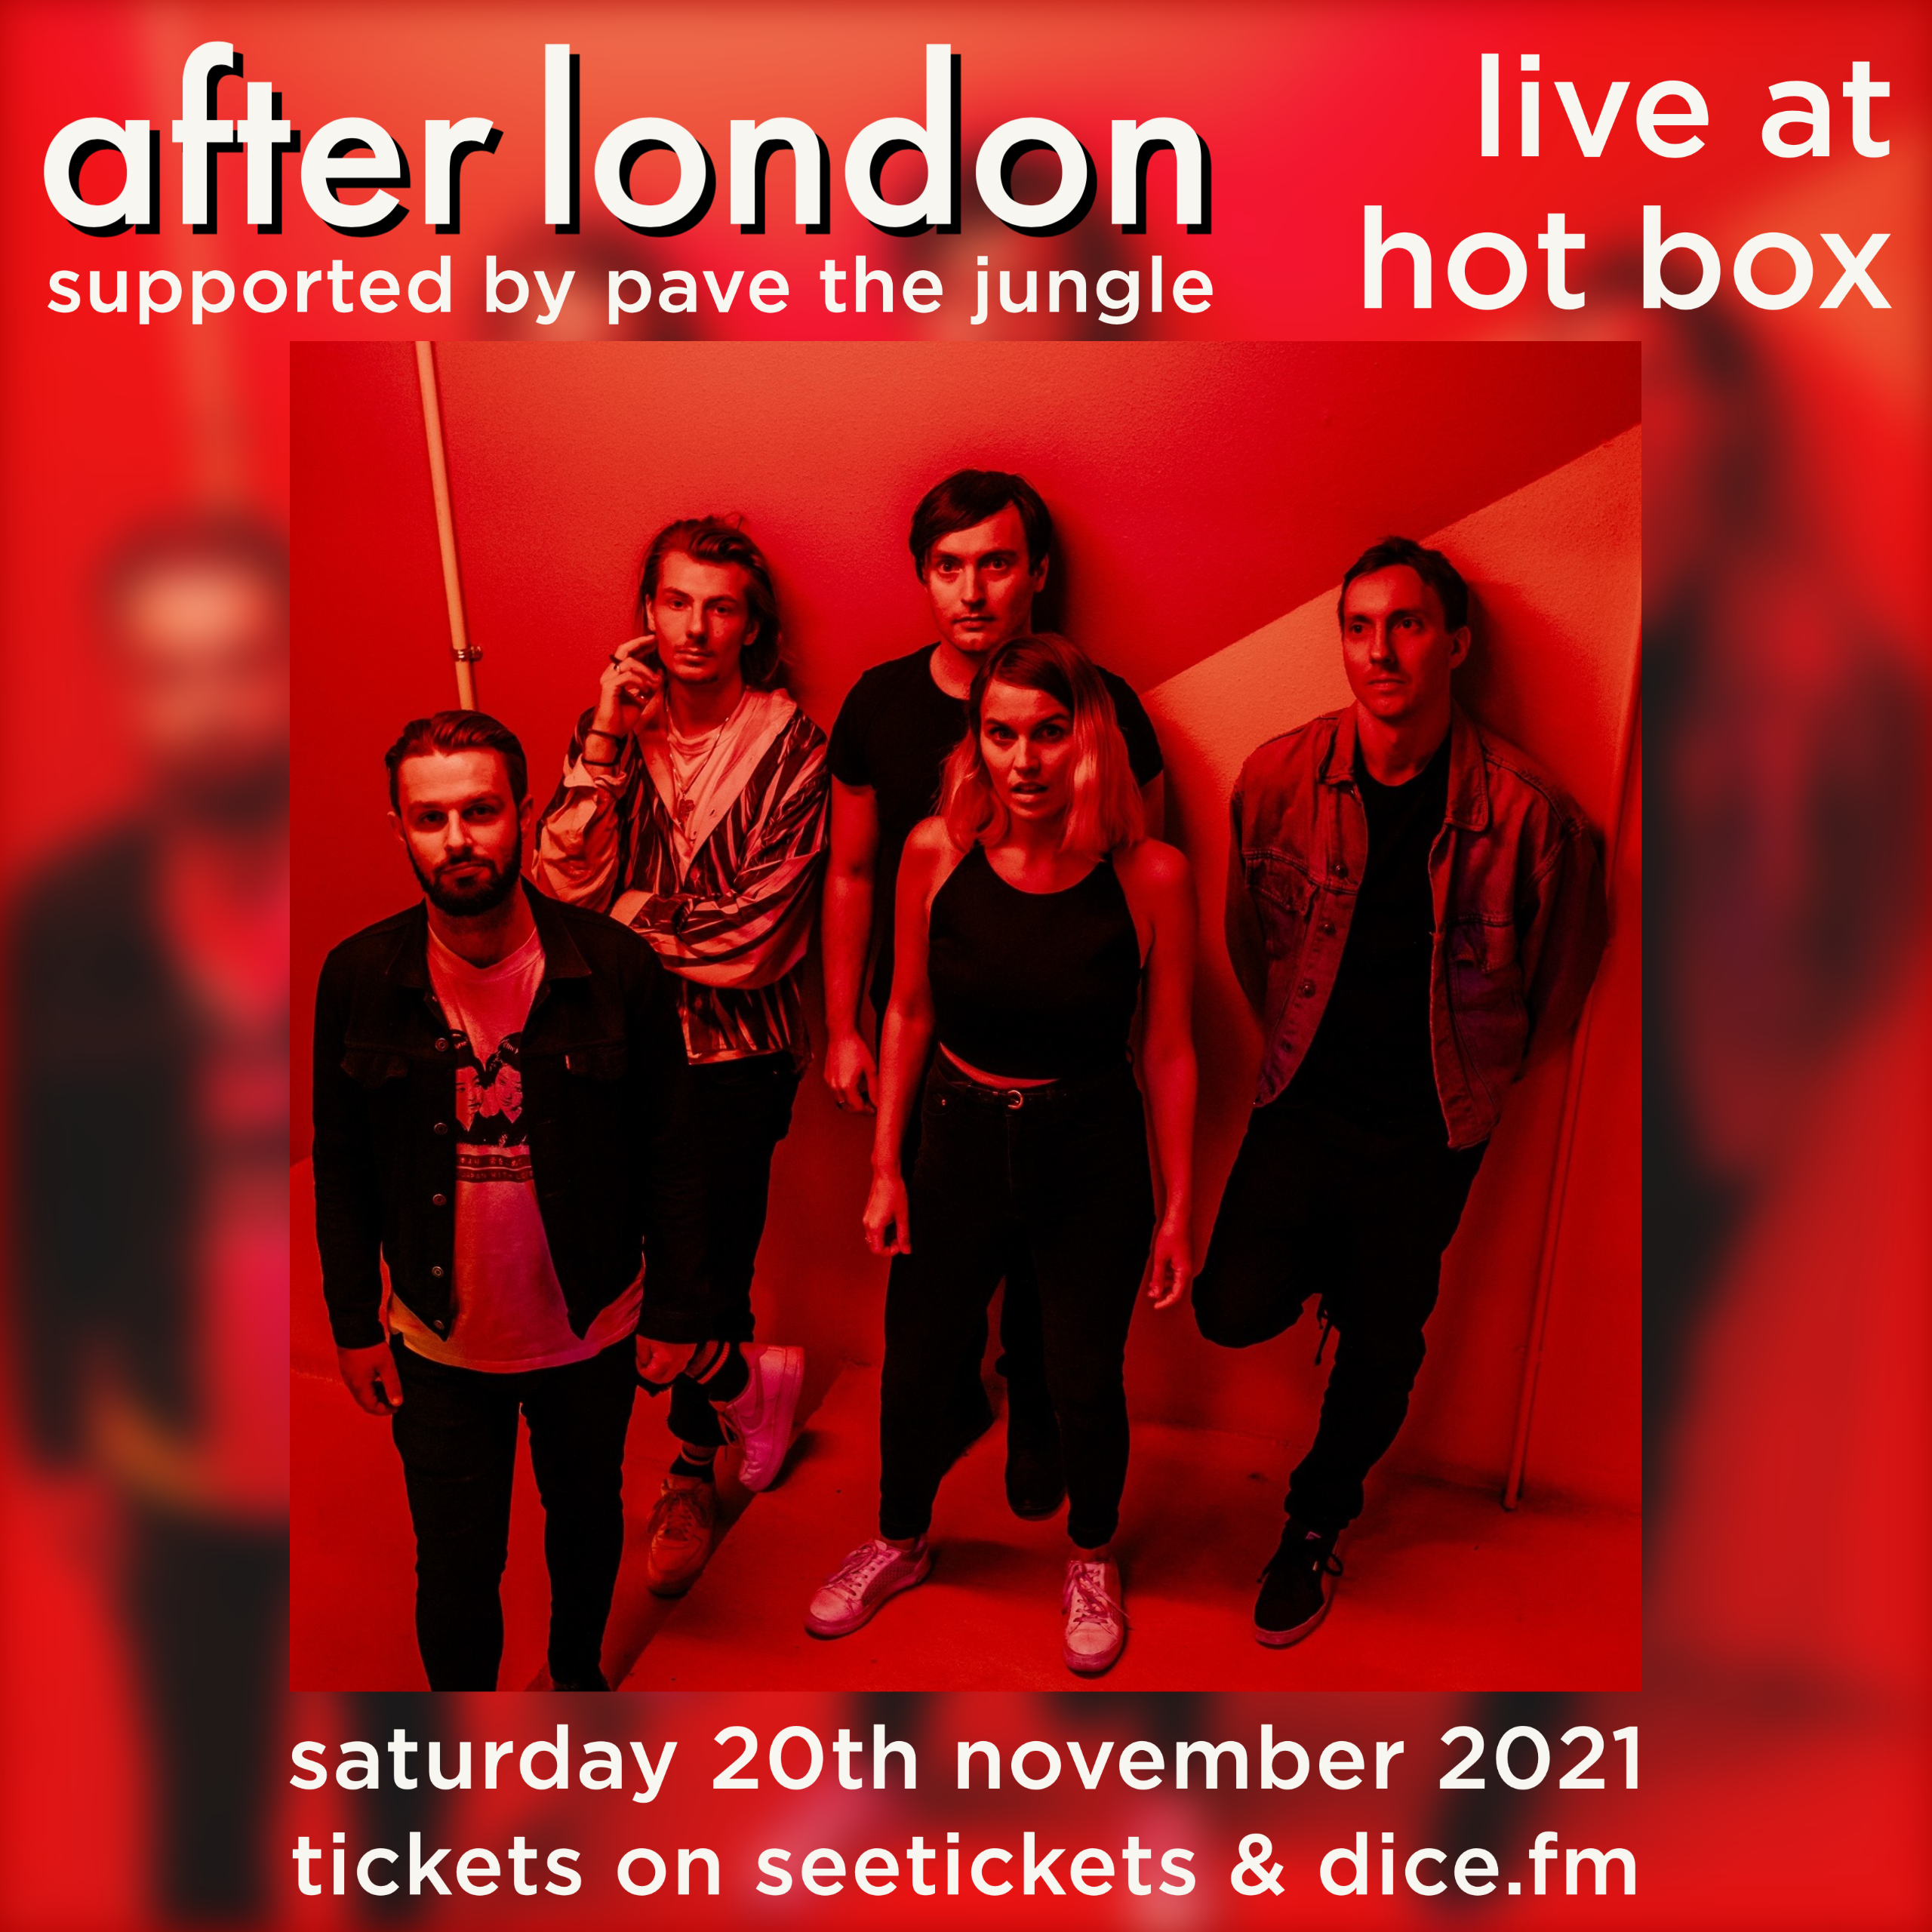 AFTER LONDON / PAVE THE JUNGLE